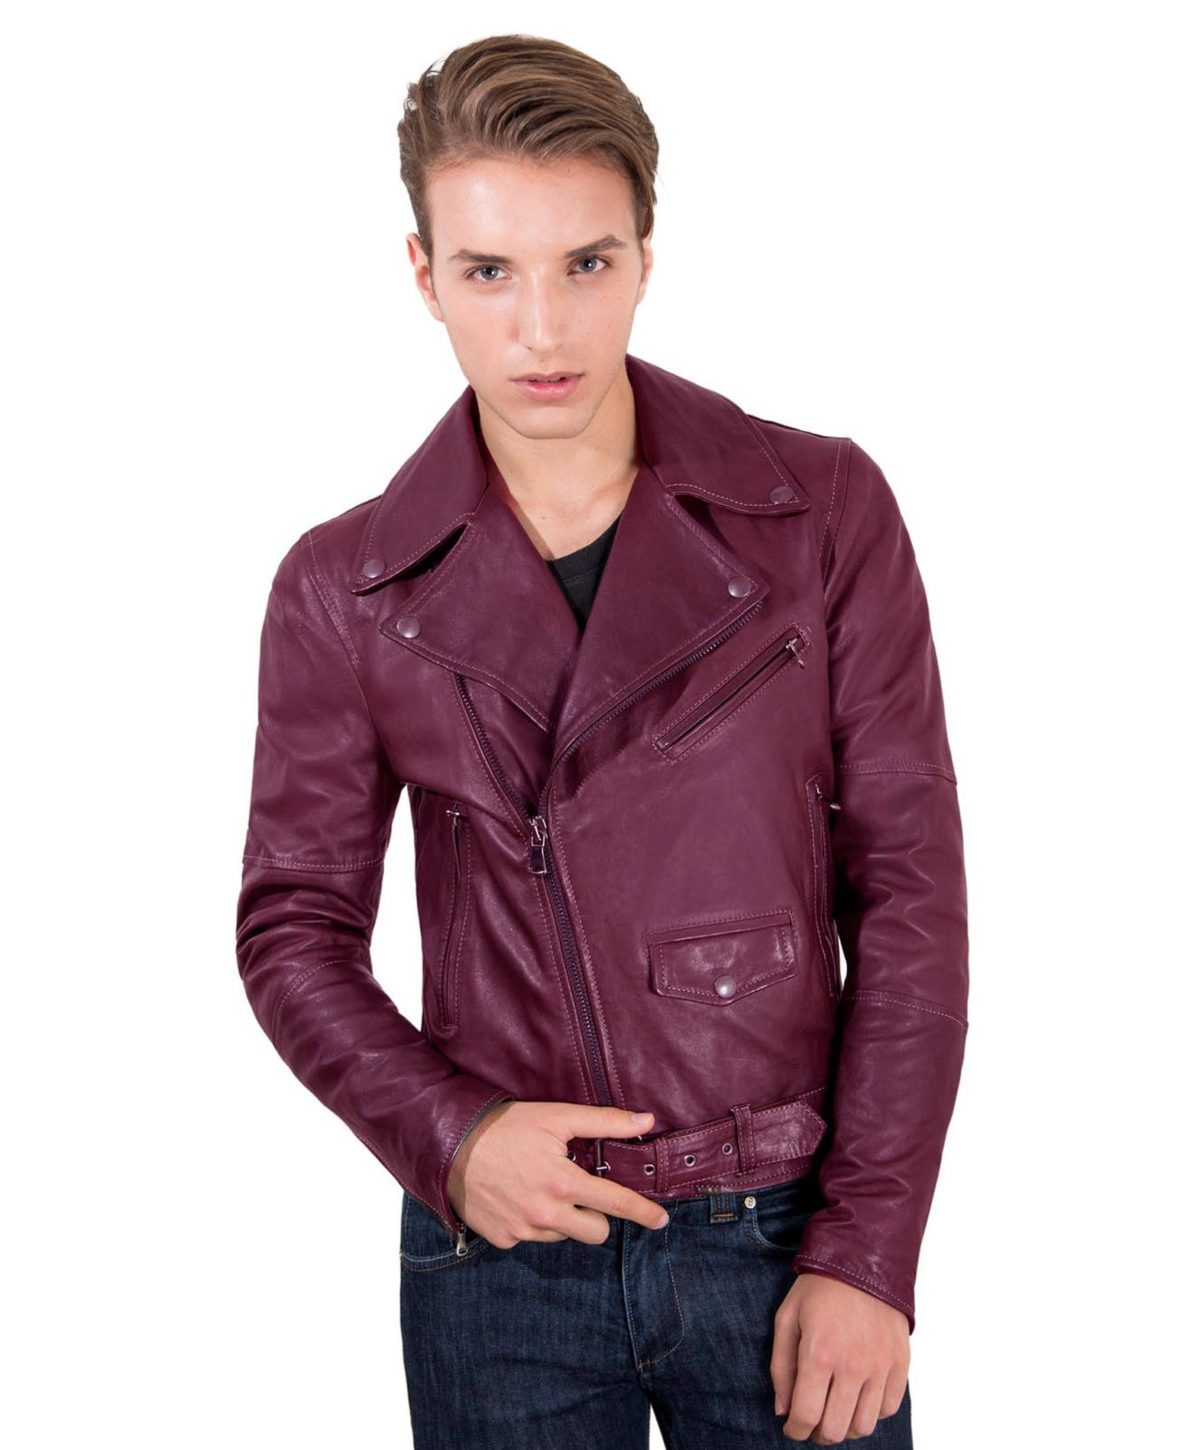 chiodo-biker-red-purple-perfecto-lamb-belted-leather-biker-jacket (3)